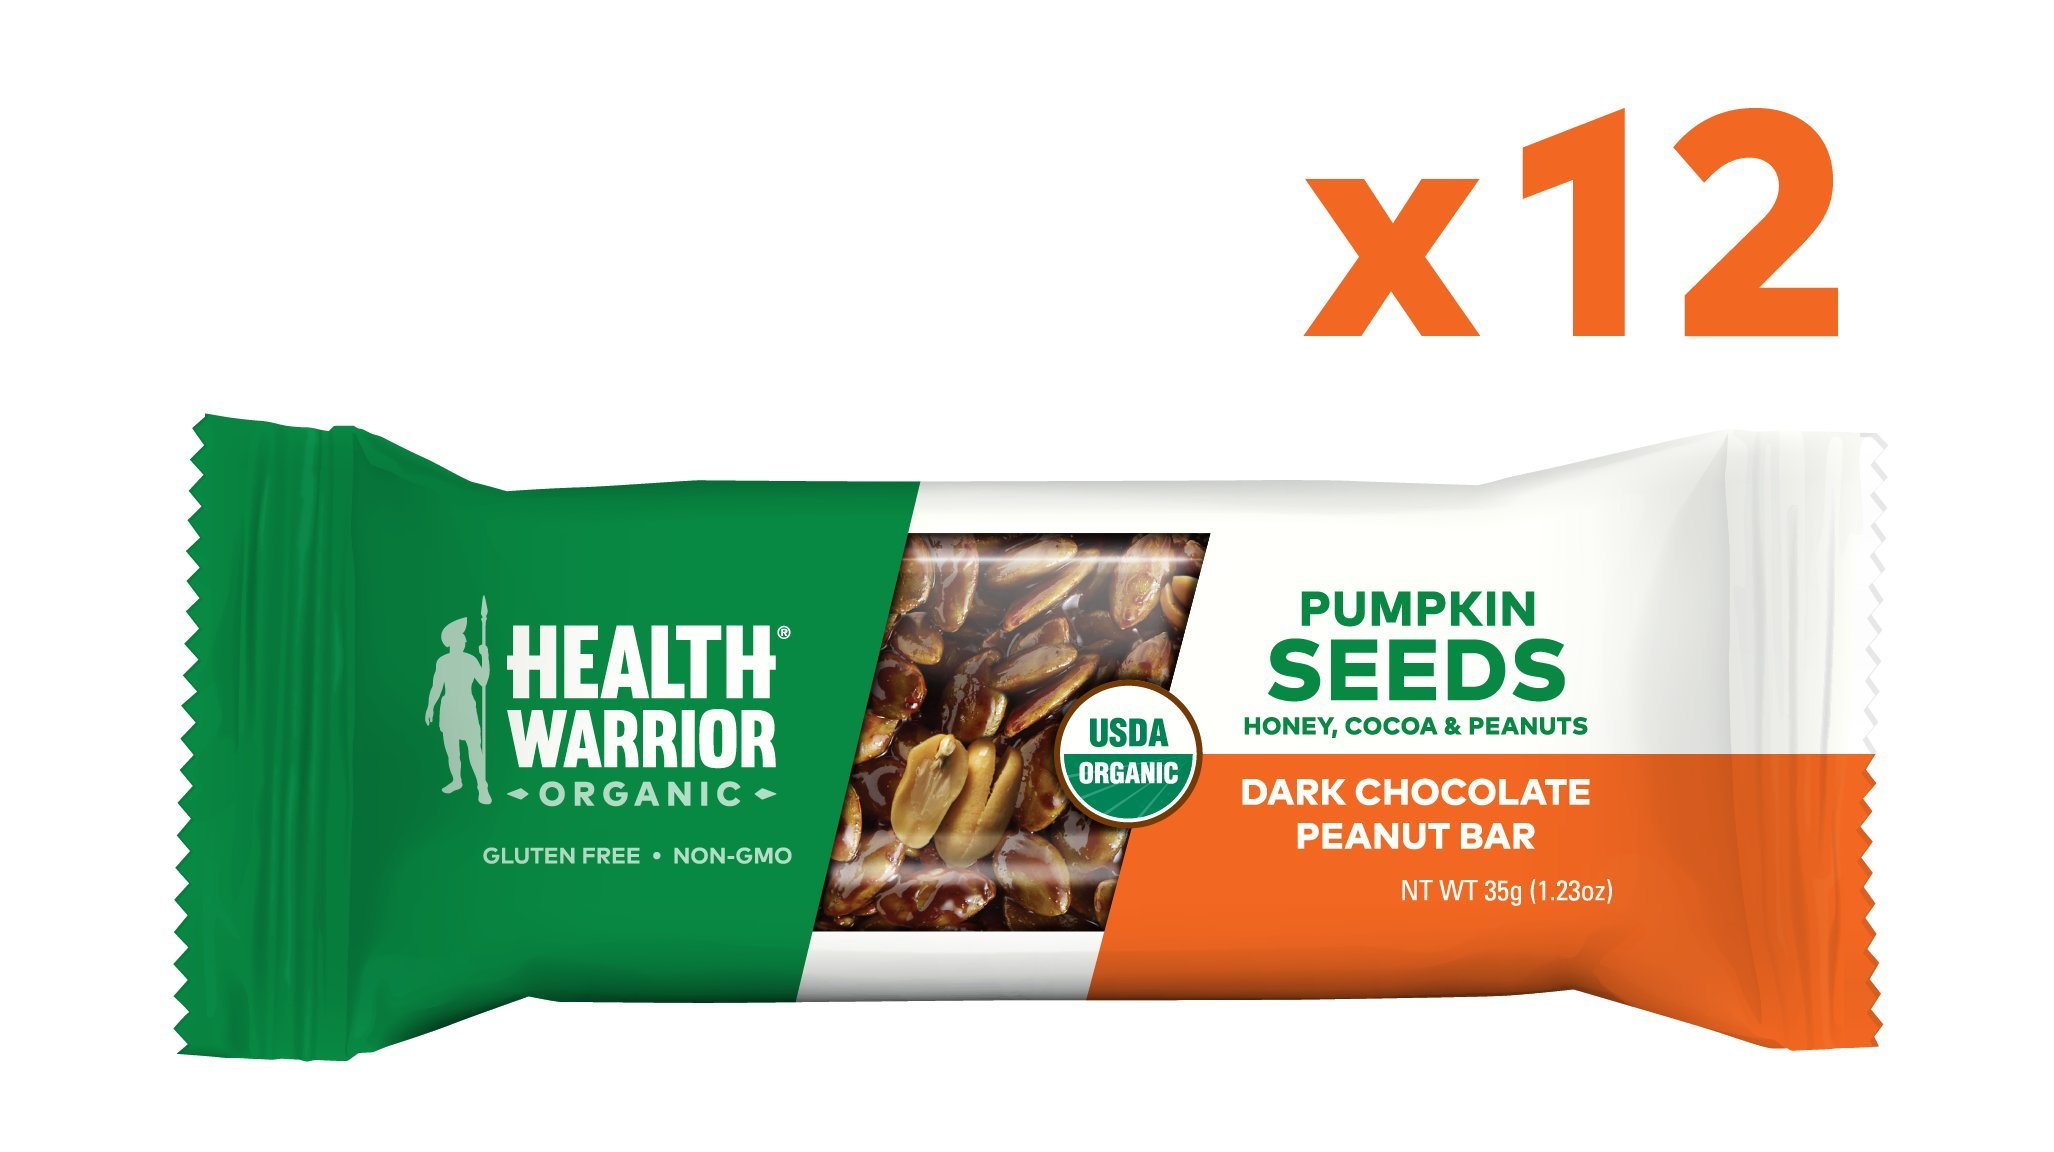 Health Warrior Pumpkin Seed Protein Bars, Dark Chocolate Peanut, 8g Plant Protein, Gluten Free, Certified Organic, 12 Count